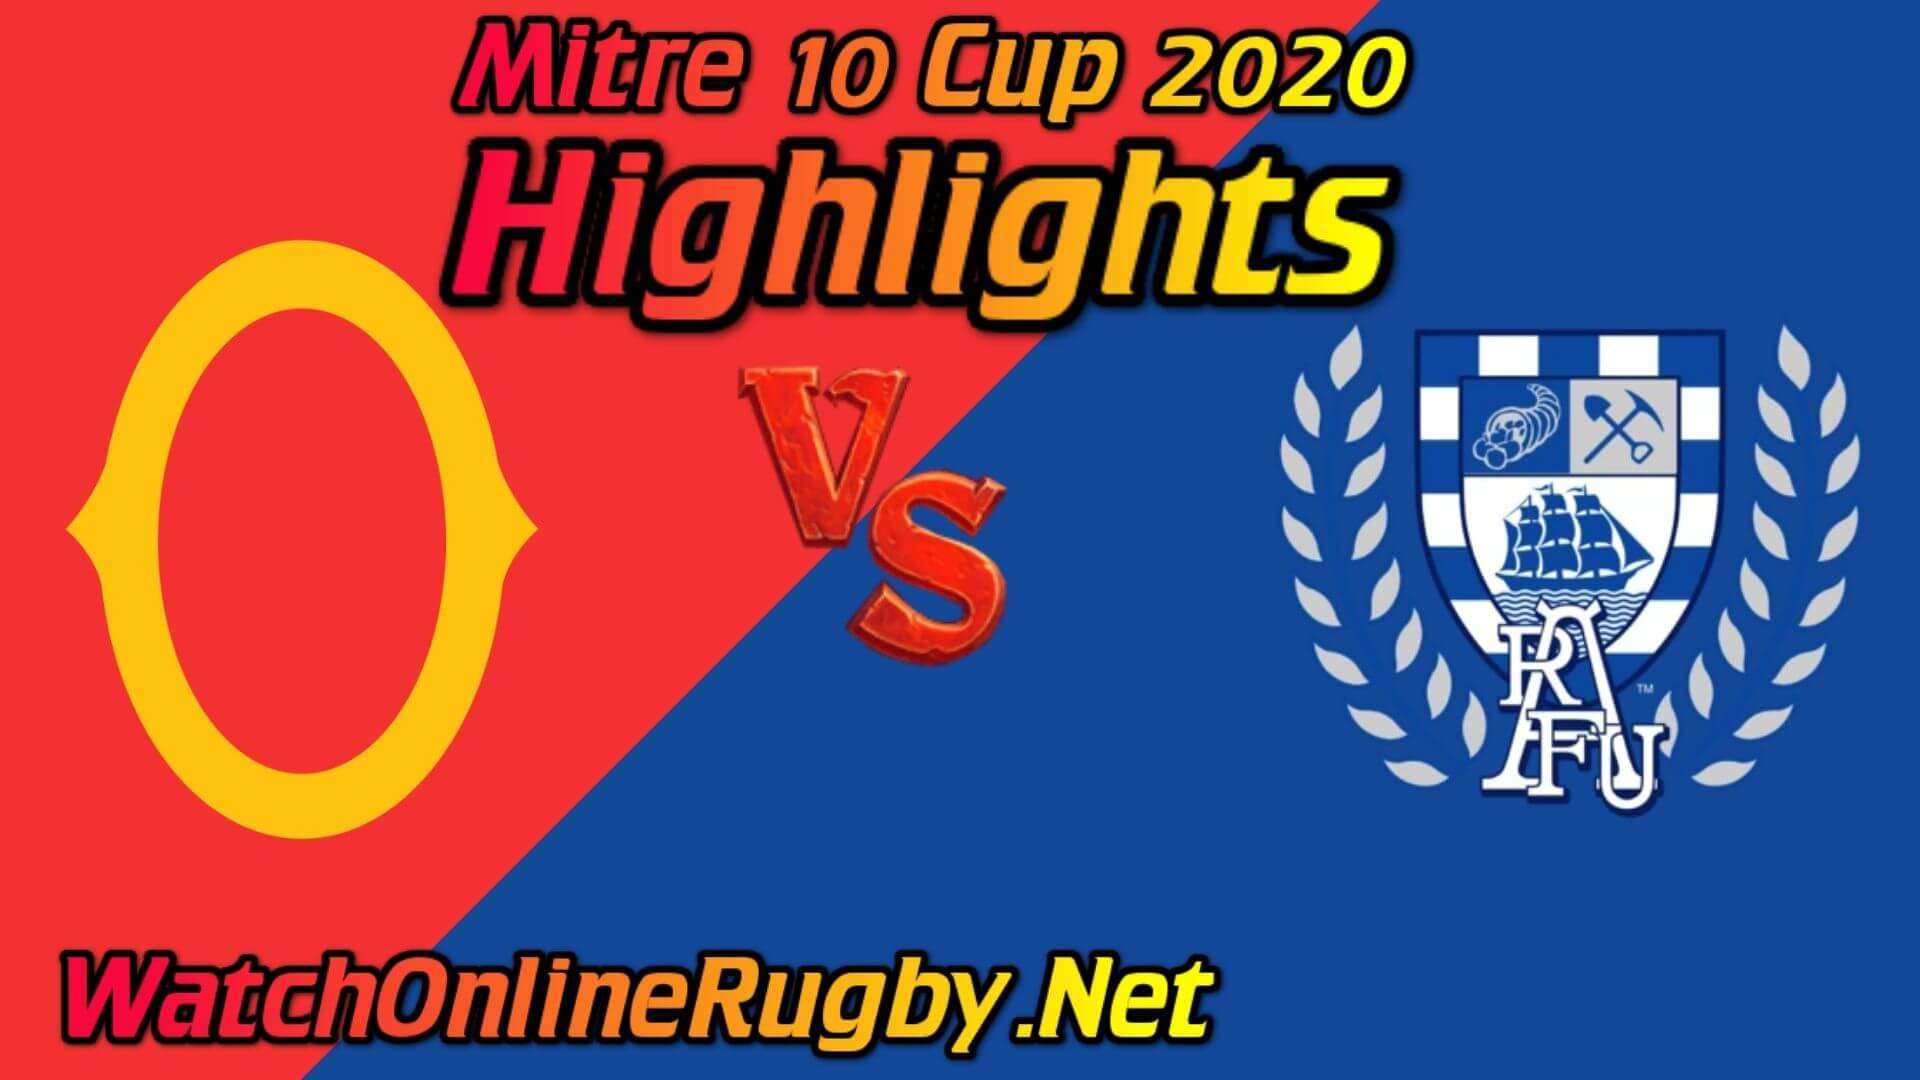 Otago vs Auckland Highlights 2020 M10 Cup